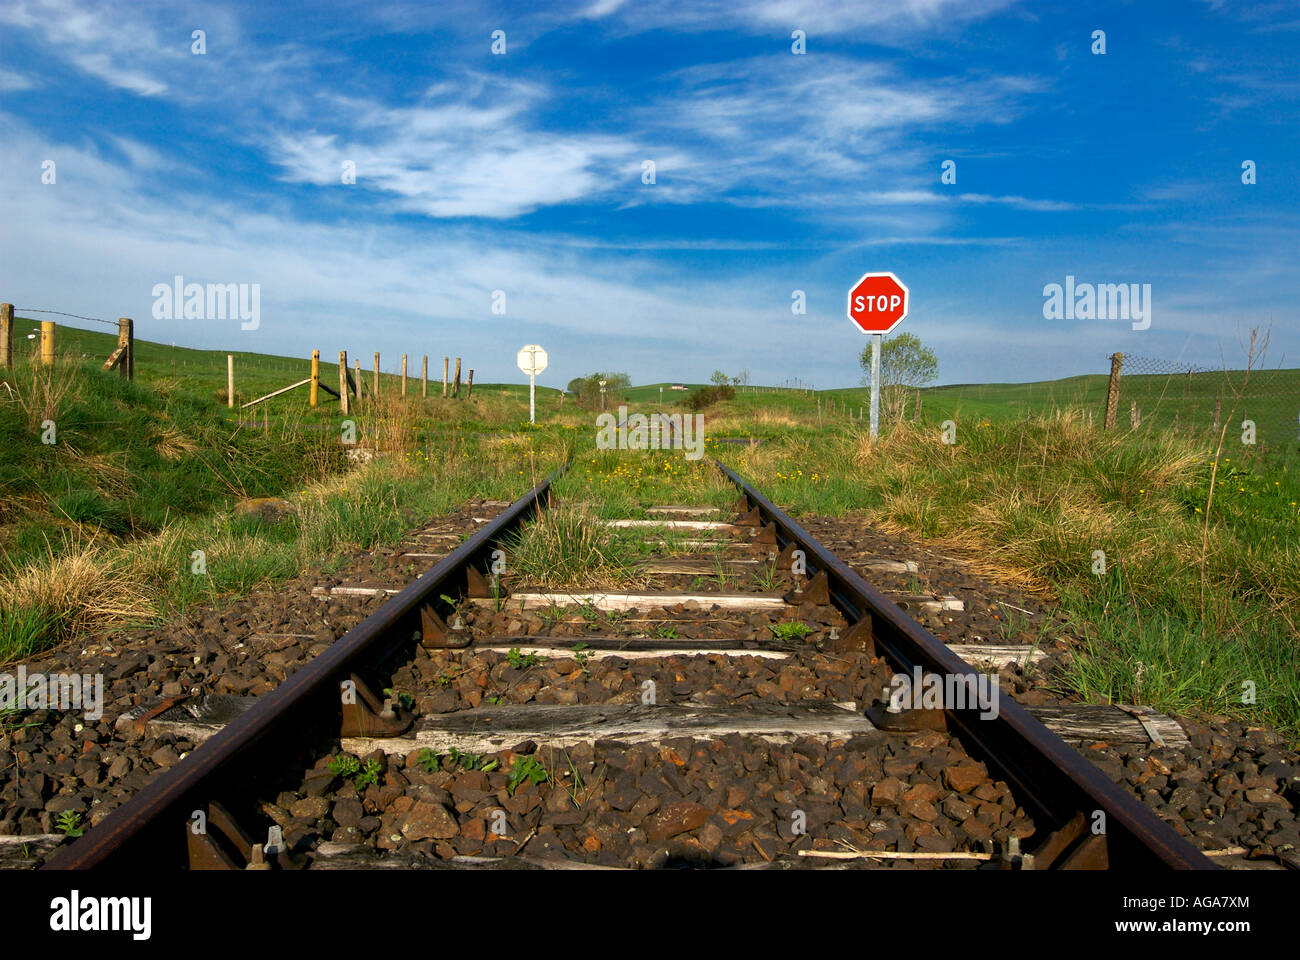 Old disused railway line train tracks with stop sign - Stock Image